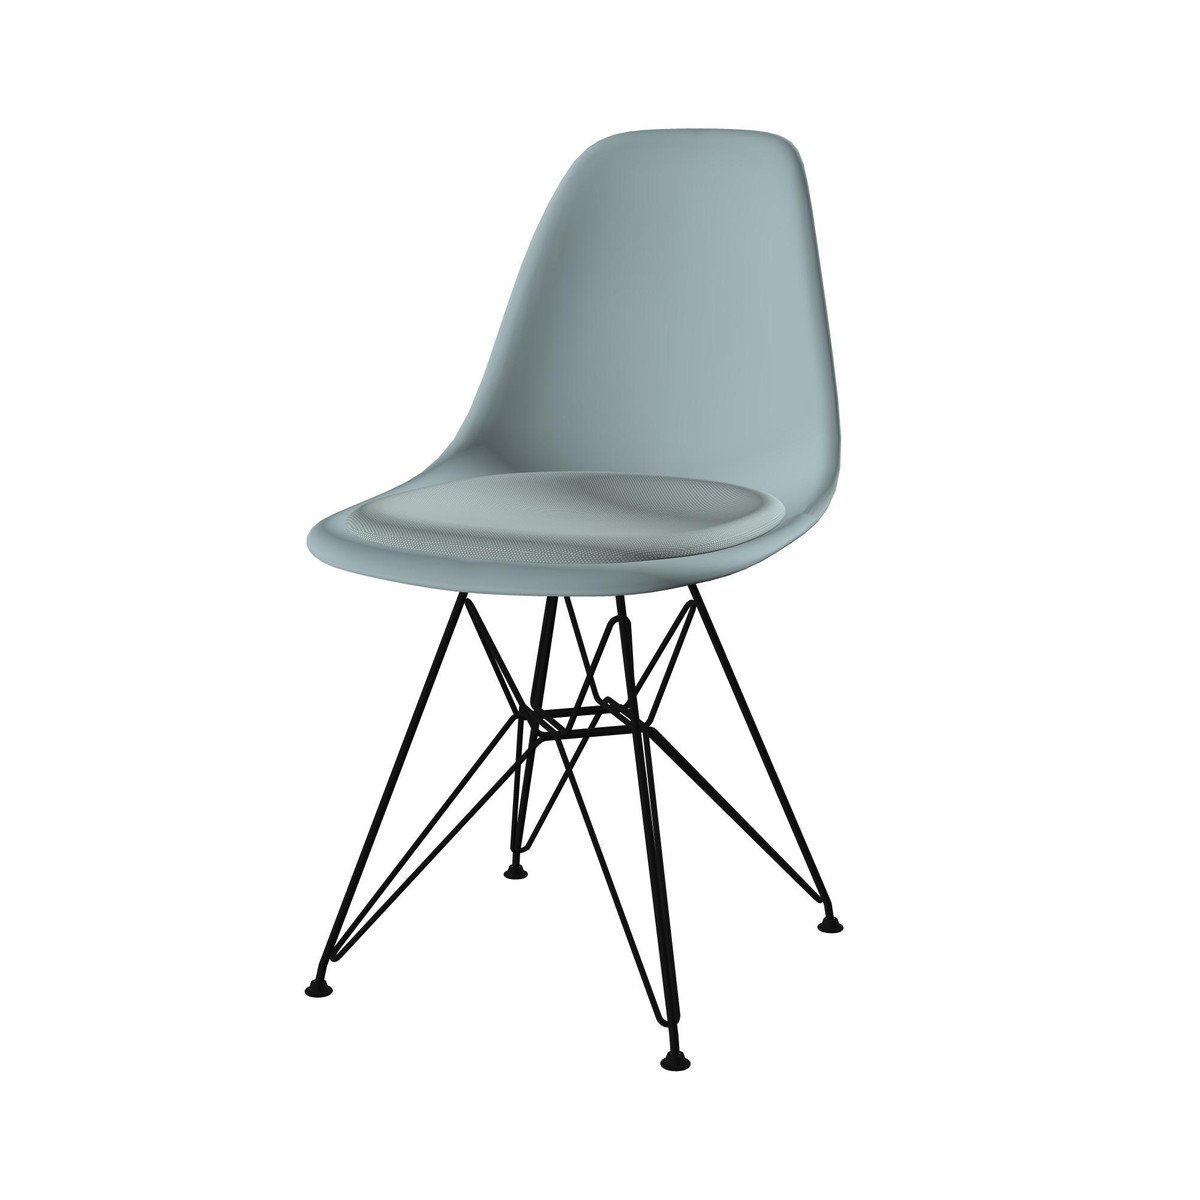 Eames Plastic Side Chair Dsr eames plastic side chair dsr upholsterd vitra ambientedirect com